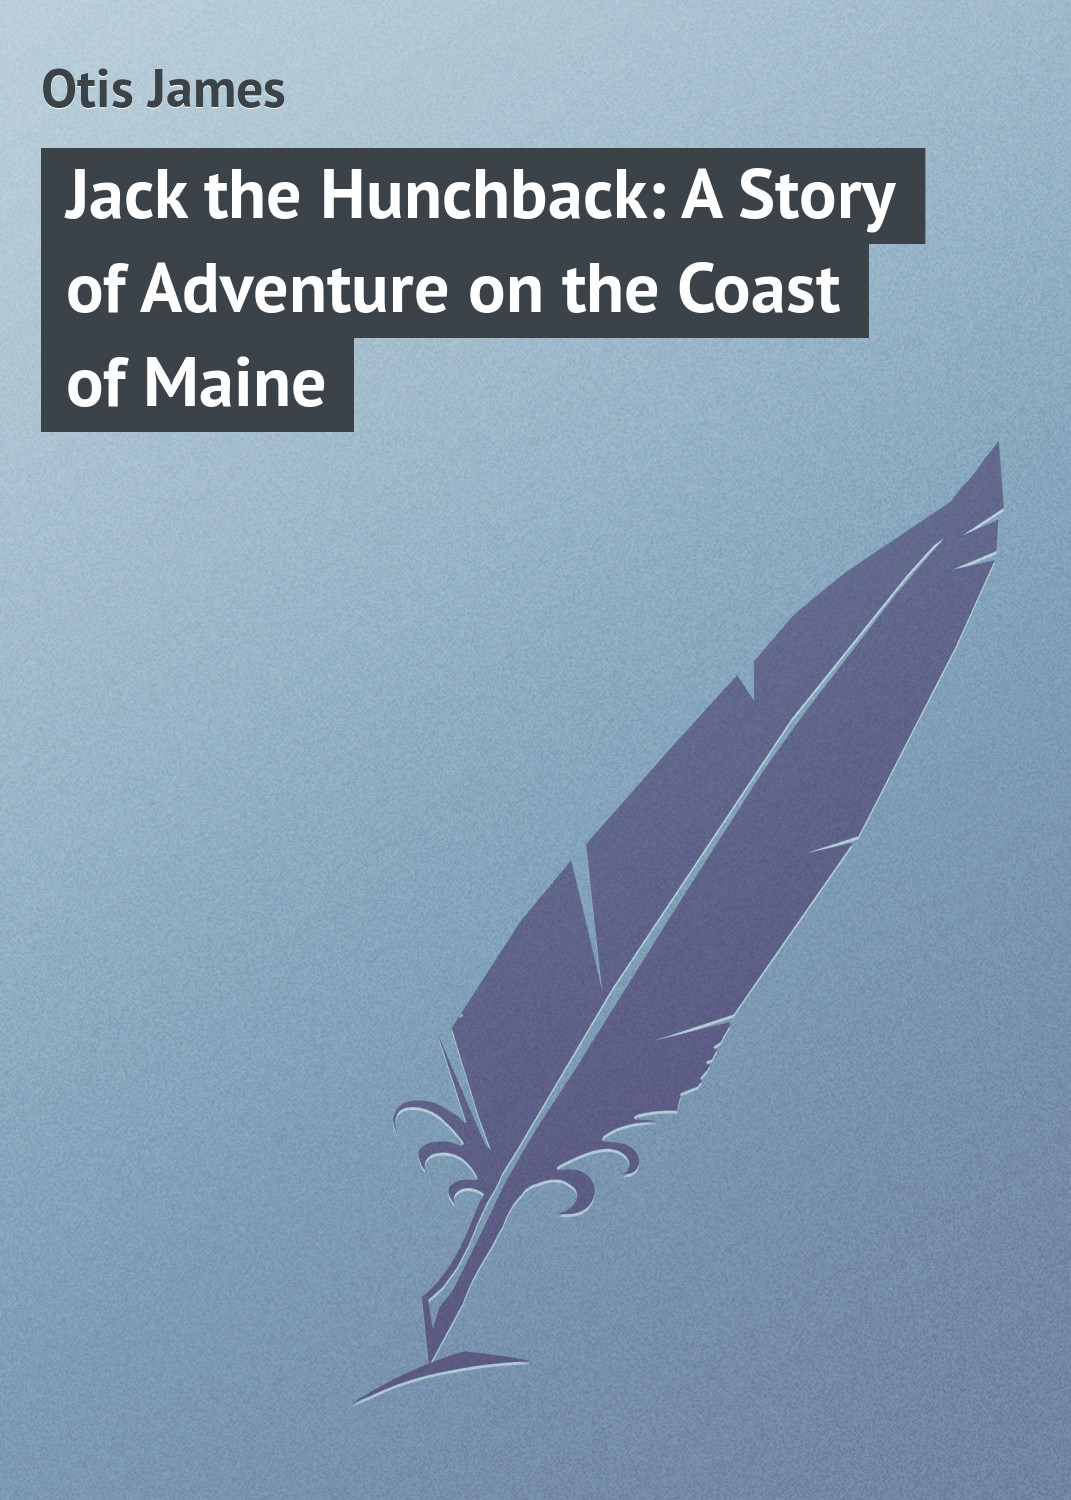 Otis James Jack the Hunchback: A Story of Adventure on the Coast of Maine джоэл коэн the boston camerata the schola cantorum of boston the shaker community of sabbathday lake maine joel cohen simple gifts